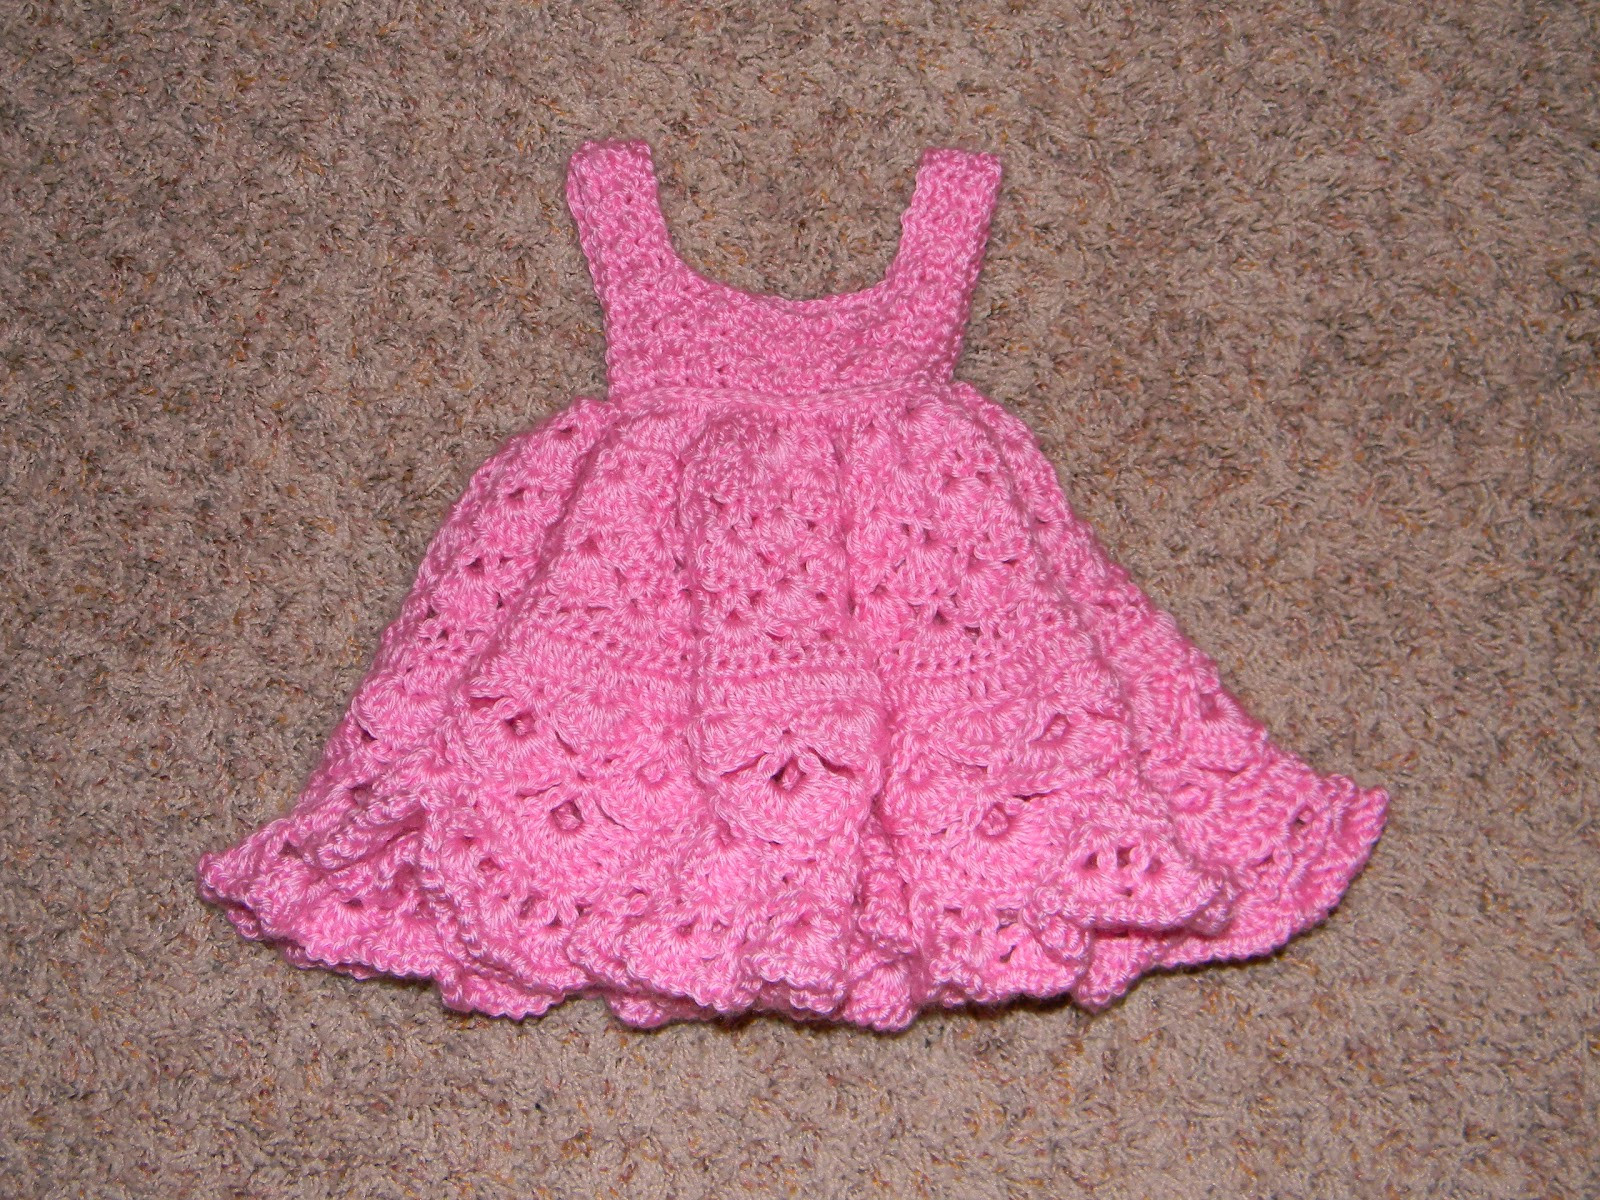 Awesome Sassy S Crafty Creations Crochet Baby Girl Dress Crochet for Baby Of New 46 Pictures Crochet for Baby